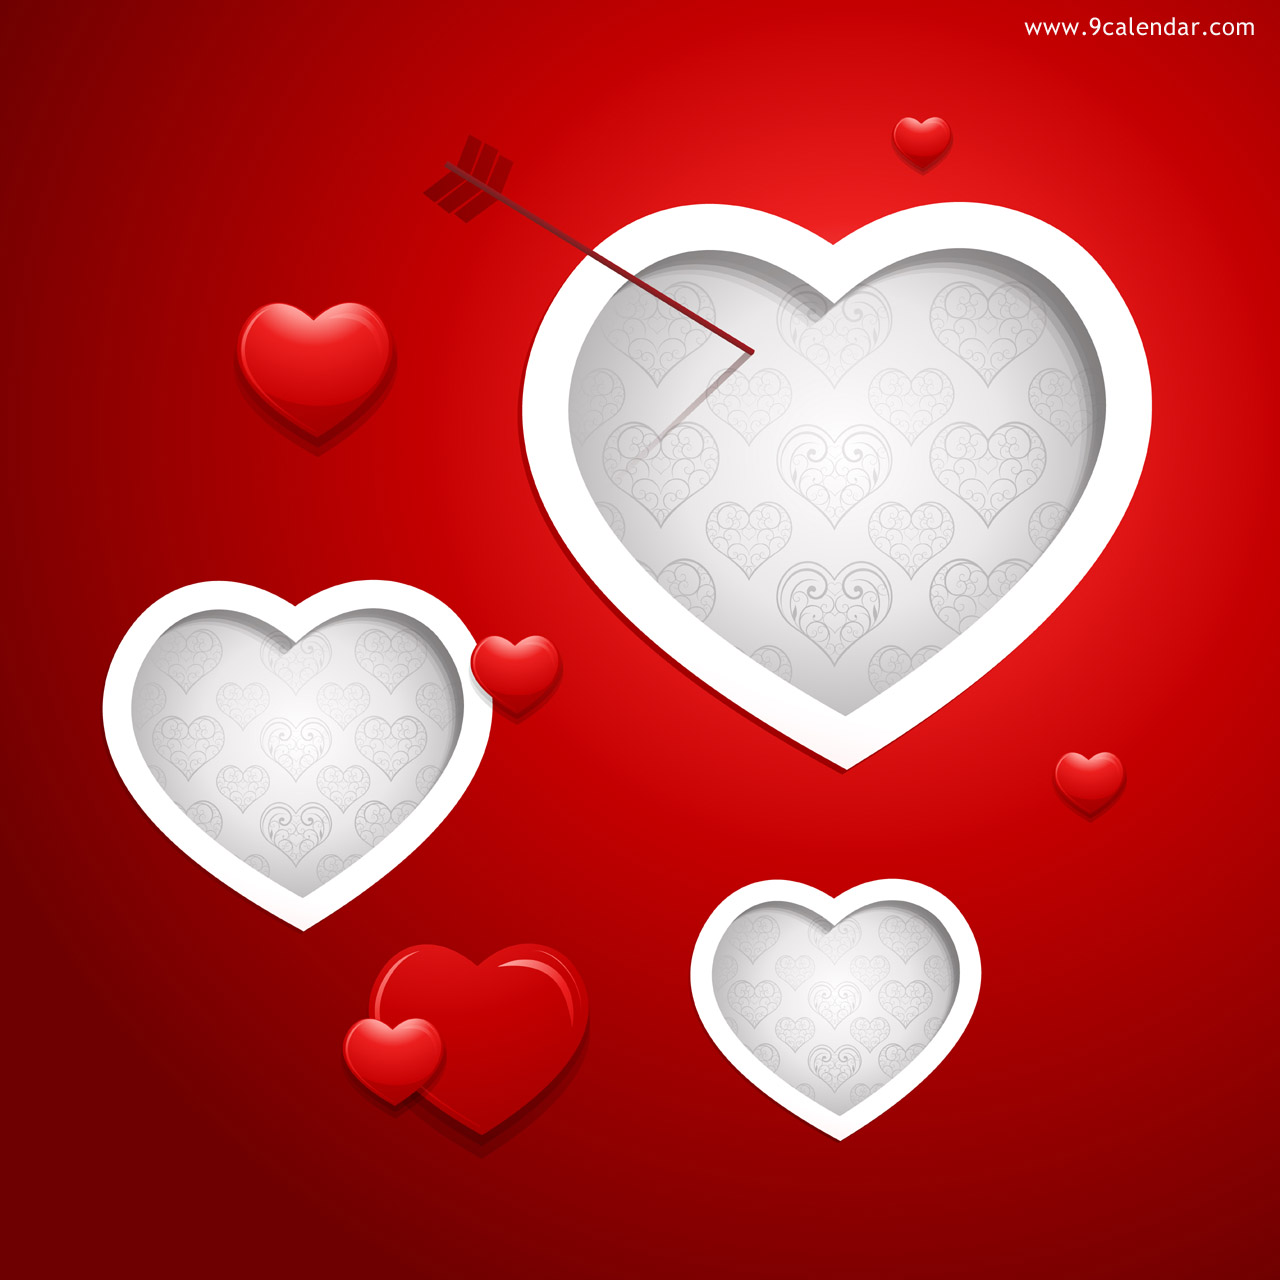 Valentines Day Background Pictures Wallpaper